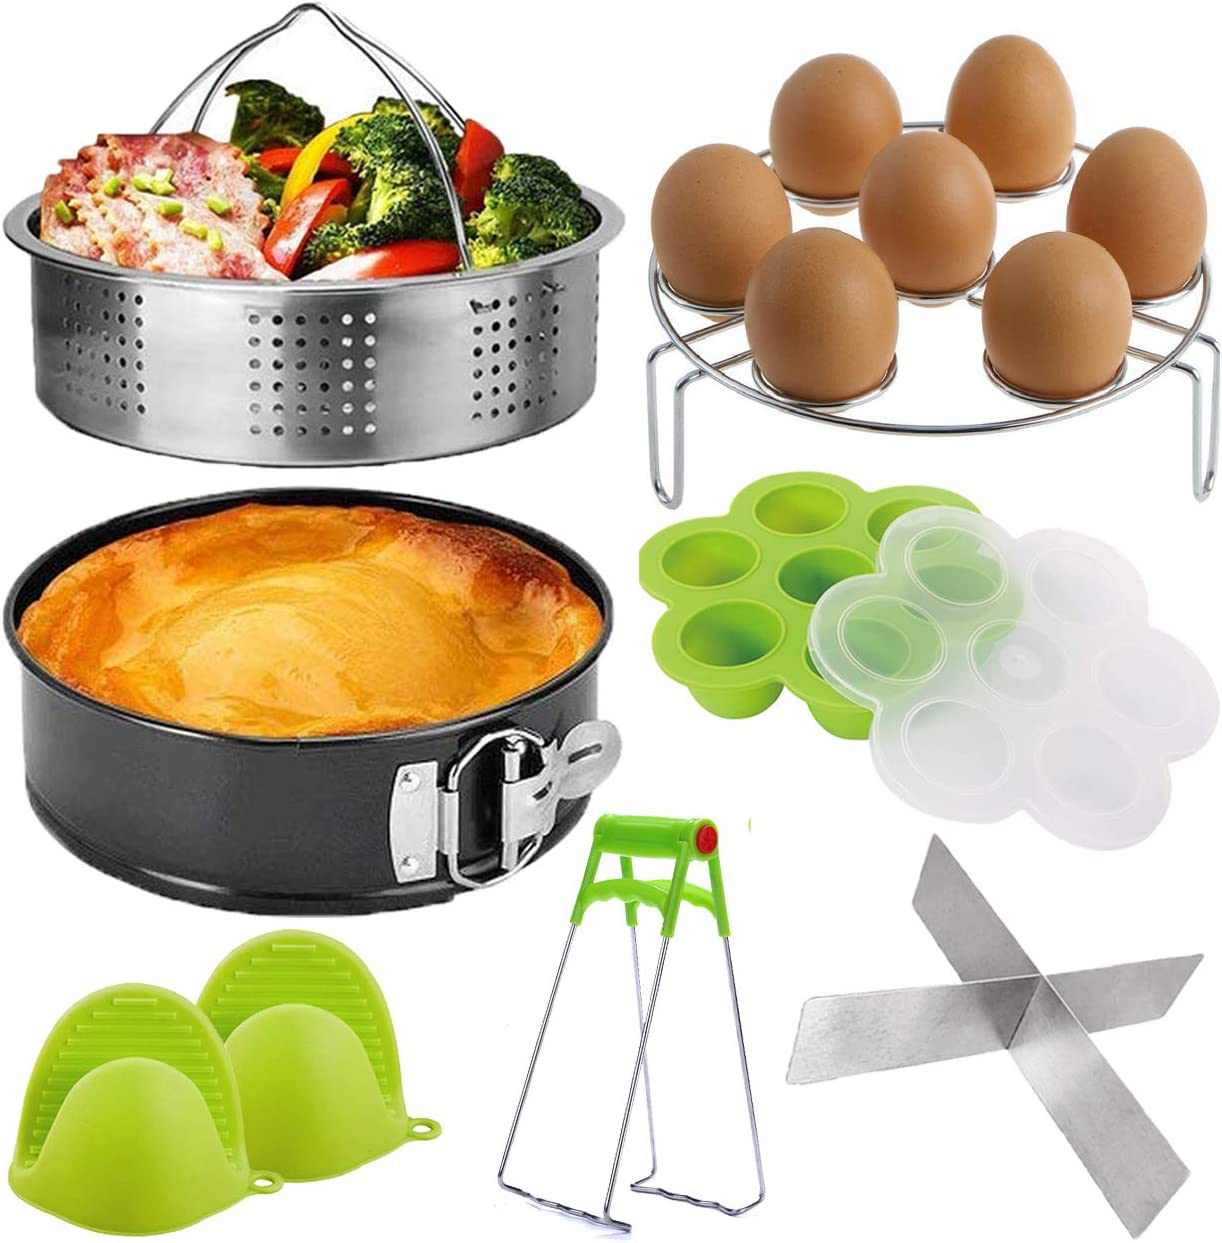 Pressure Cooker Accessories Set, Compatible with Instant Pot 5,6,8 QT Steamer Basket,Egg Rack, Springform Pan,Egg Bites Mold,Steamer Basket Inserts,1Pair Silicone Mitts/8pcs